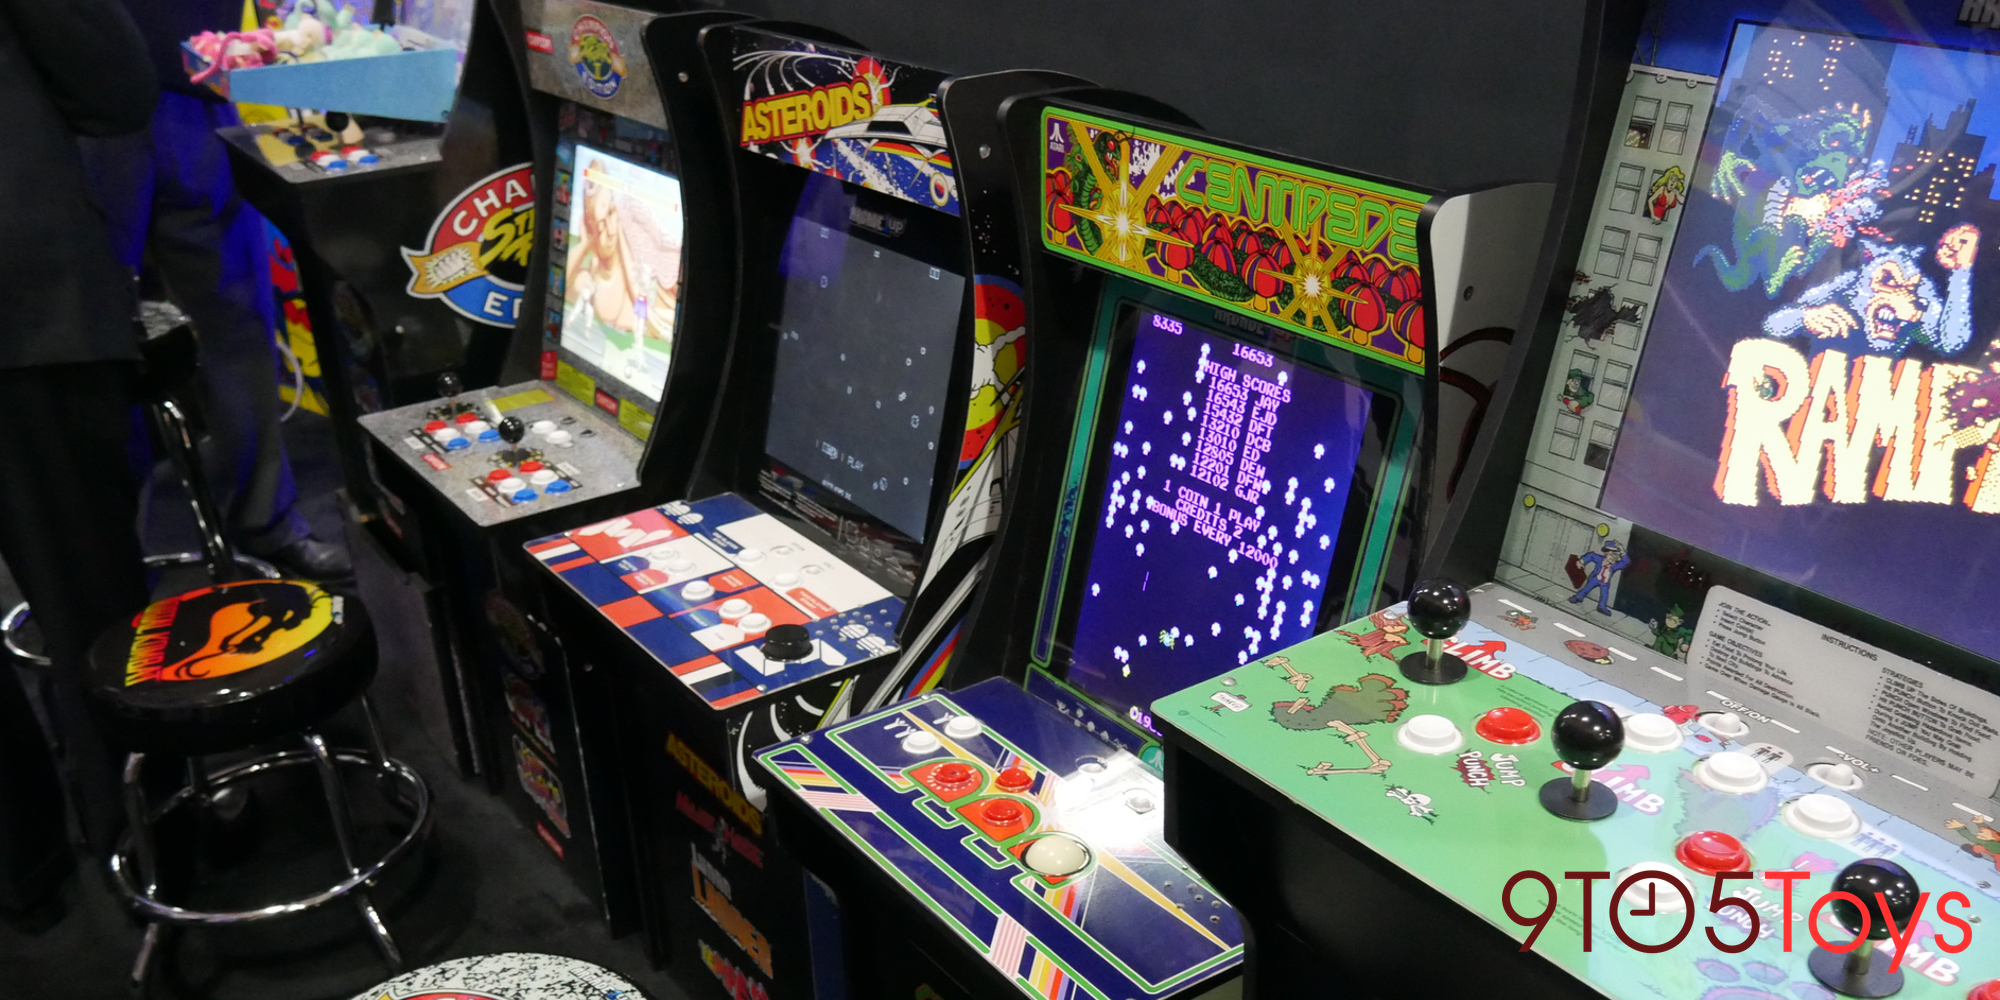 Arcade1Up expands line of retro gaming gear w/ new arcade cabinets, collectibles, more at Toy Fair